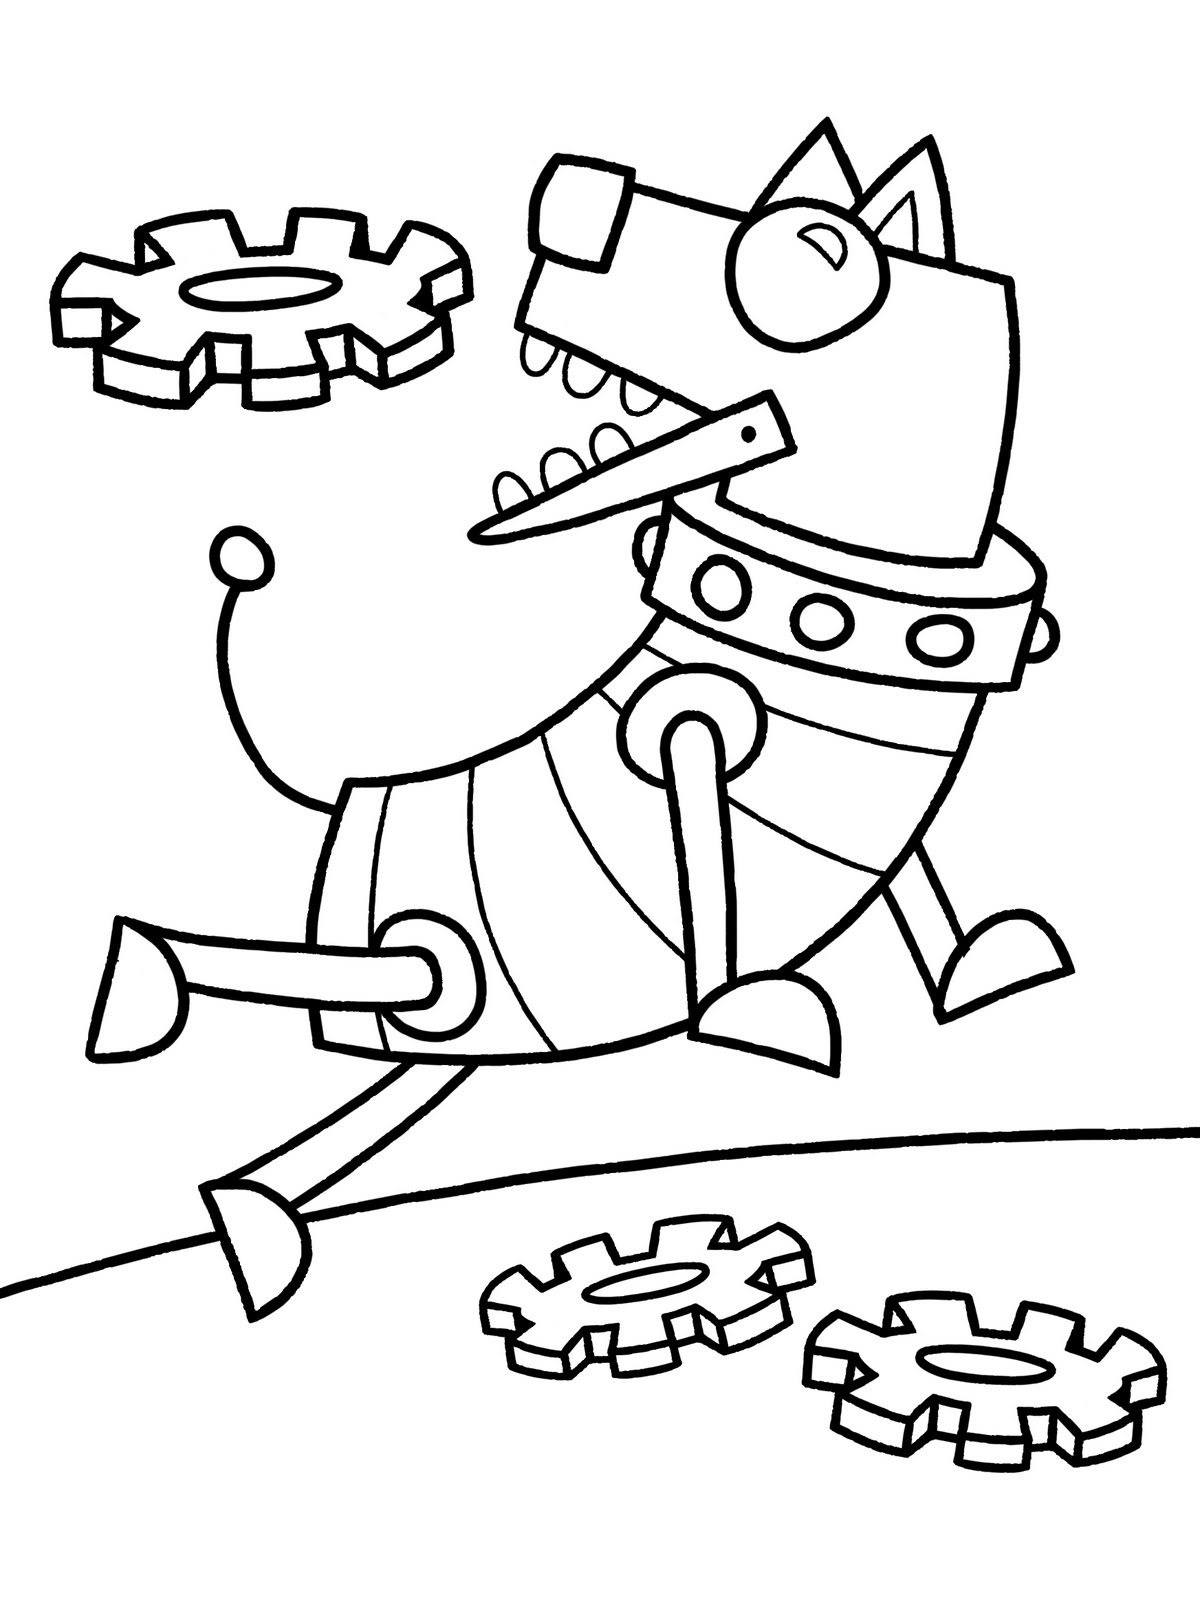 1200x1600 Robot Dog Printable Coloring Page Robots In Pages